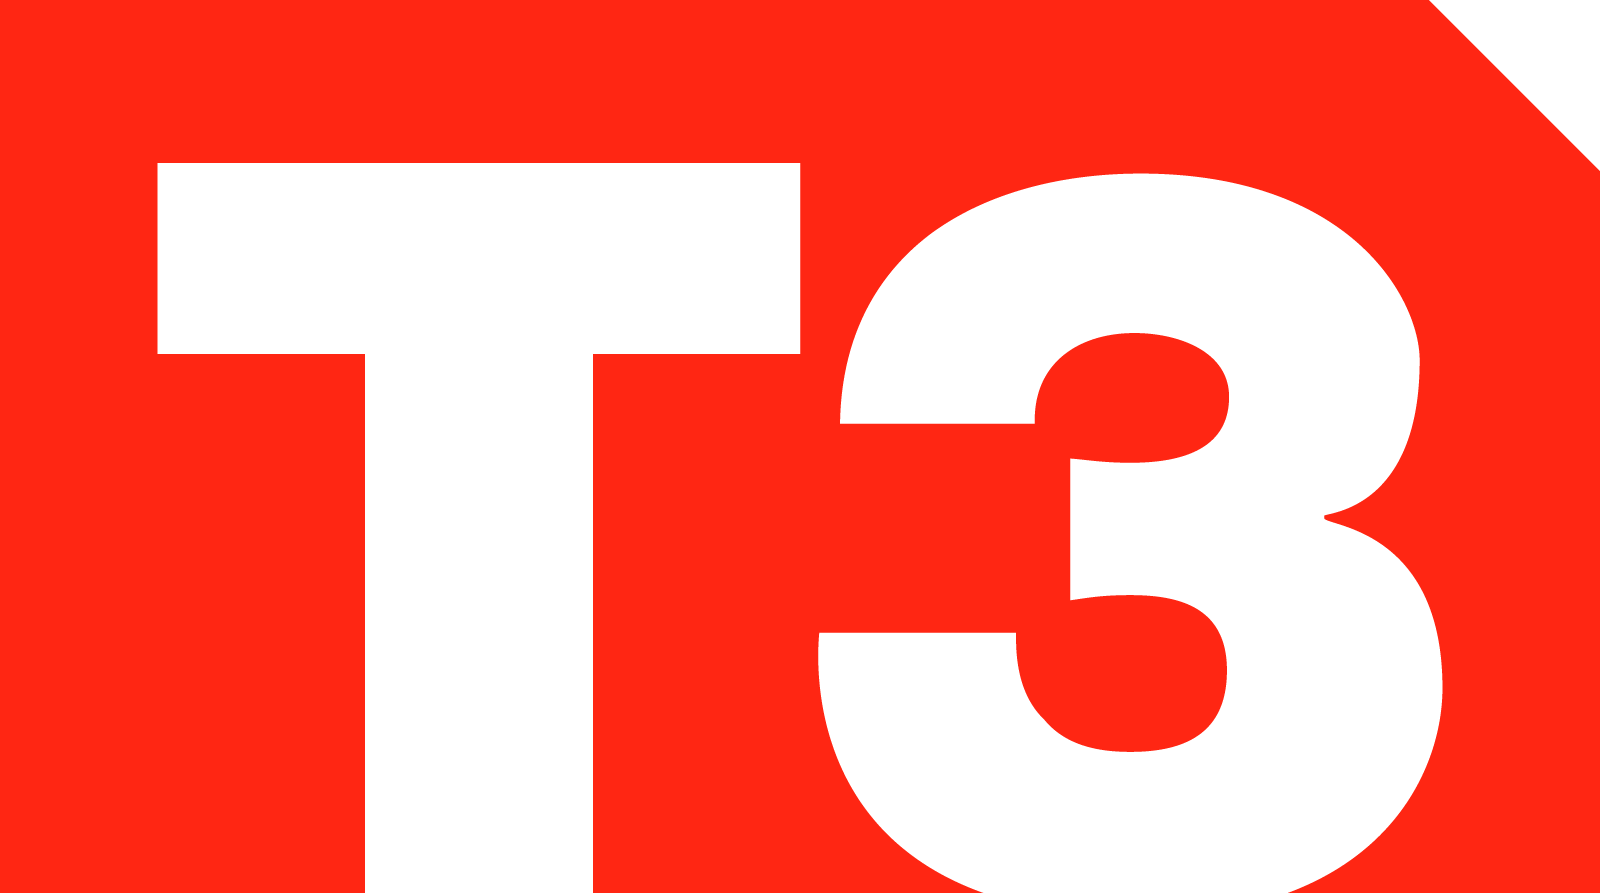 T3_Logo_Red (1).png